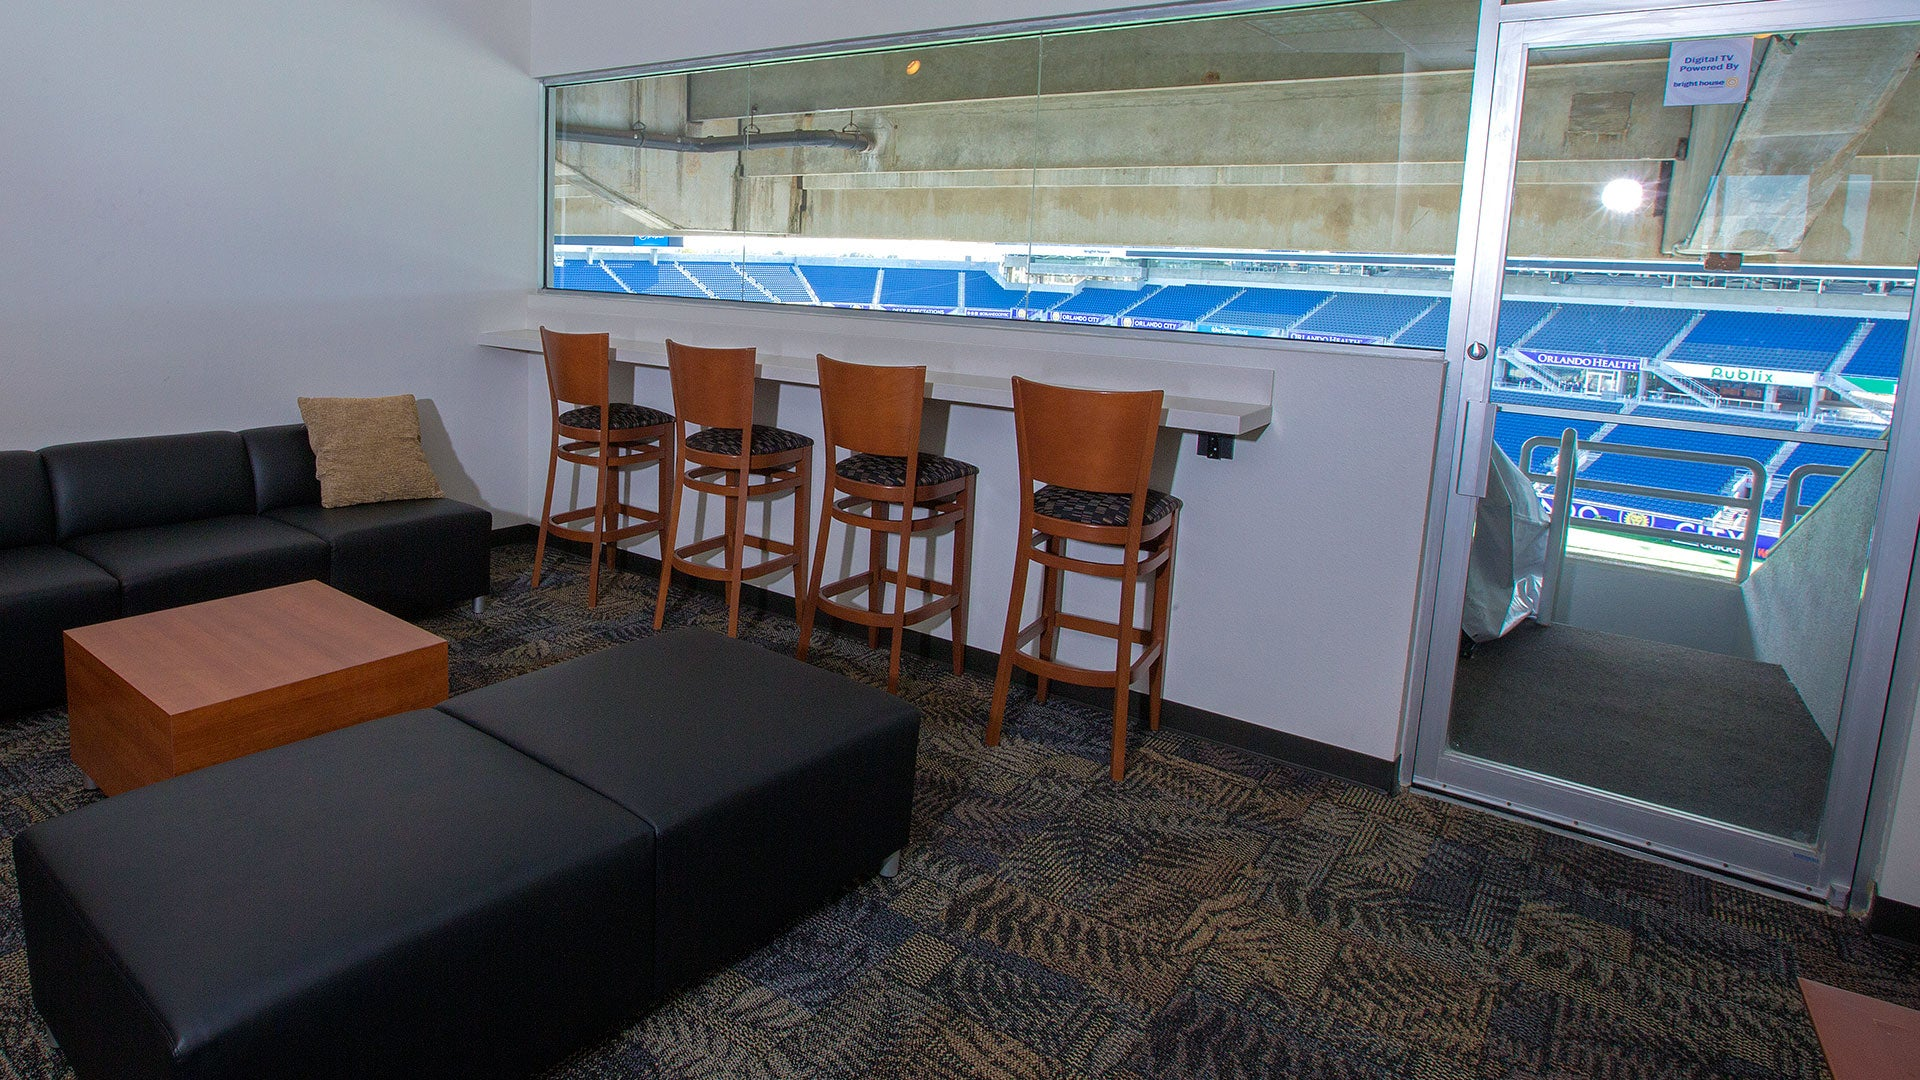 Suites camping world stadium for Mercedes benz stadium box office hours